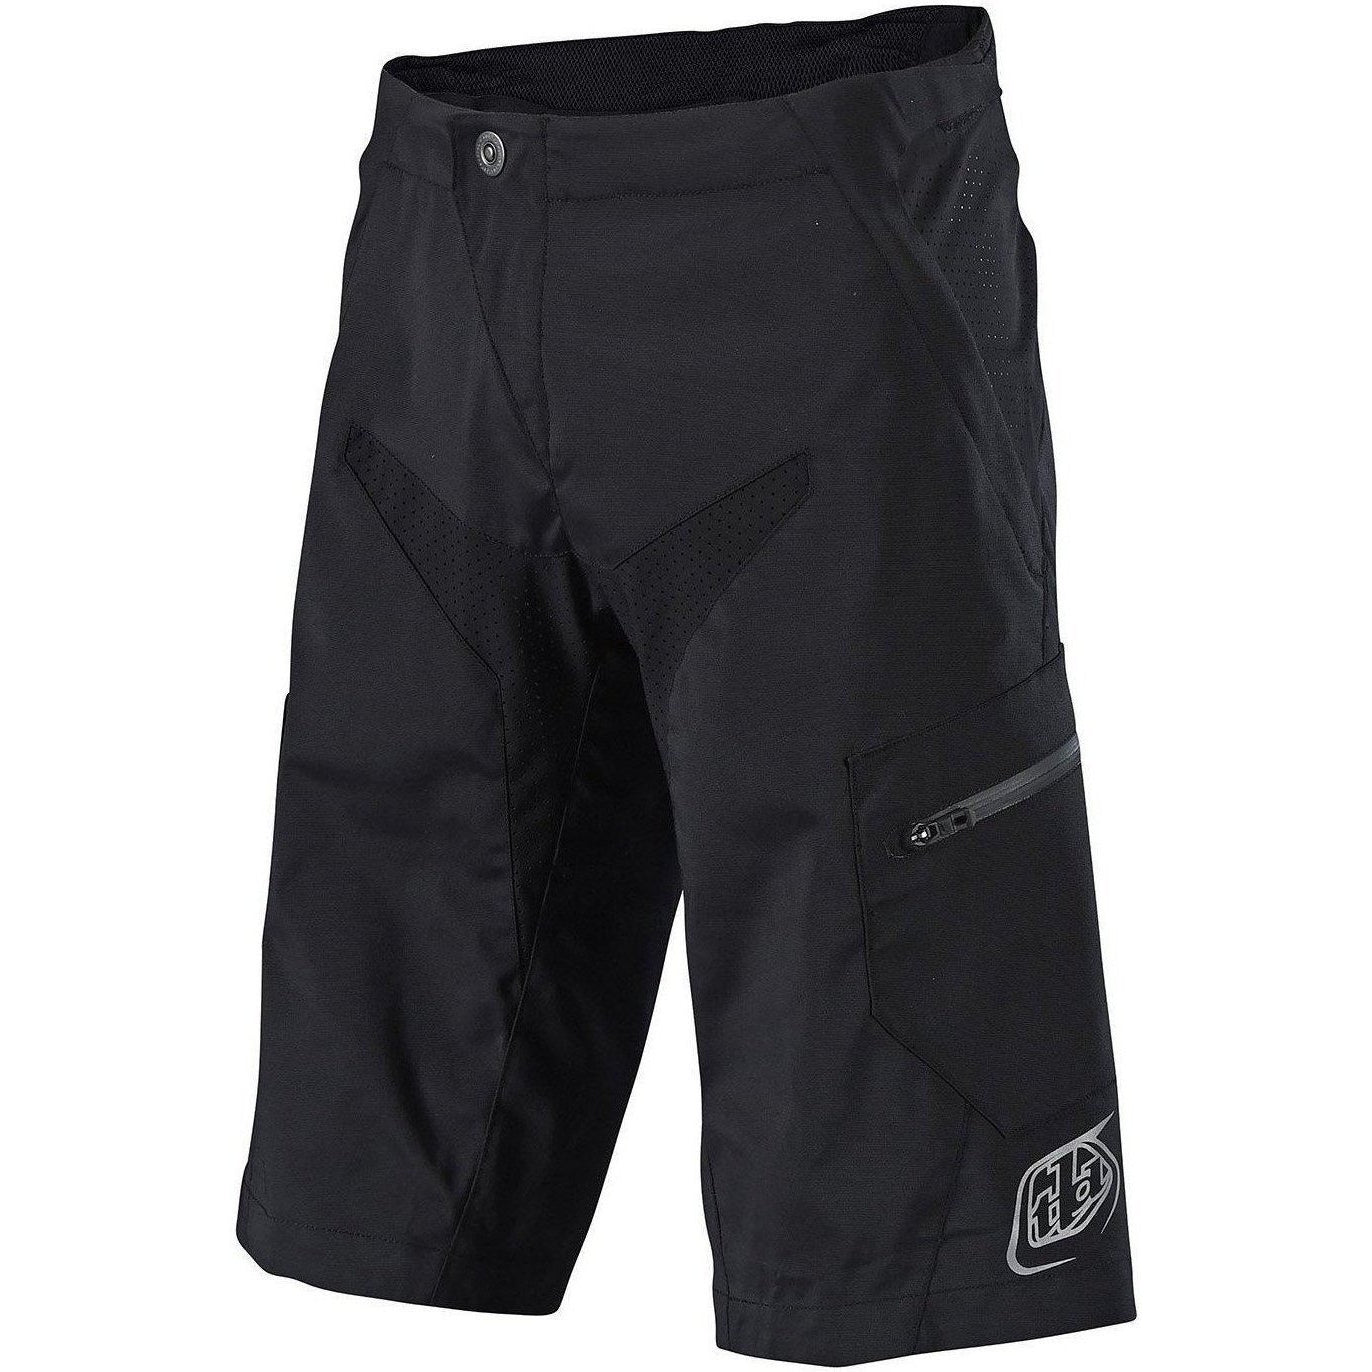 Troy Lee Designs-Troy Lee Designs Moto Shorts-BLACK-38-TLD225003216-saddleback-elite-performance-cycling